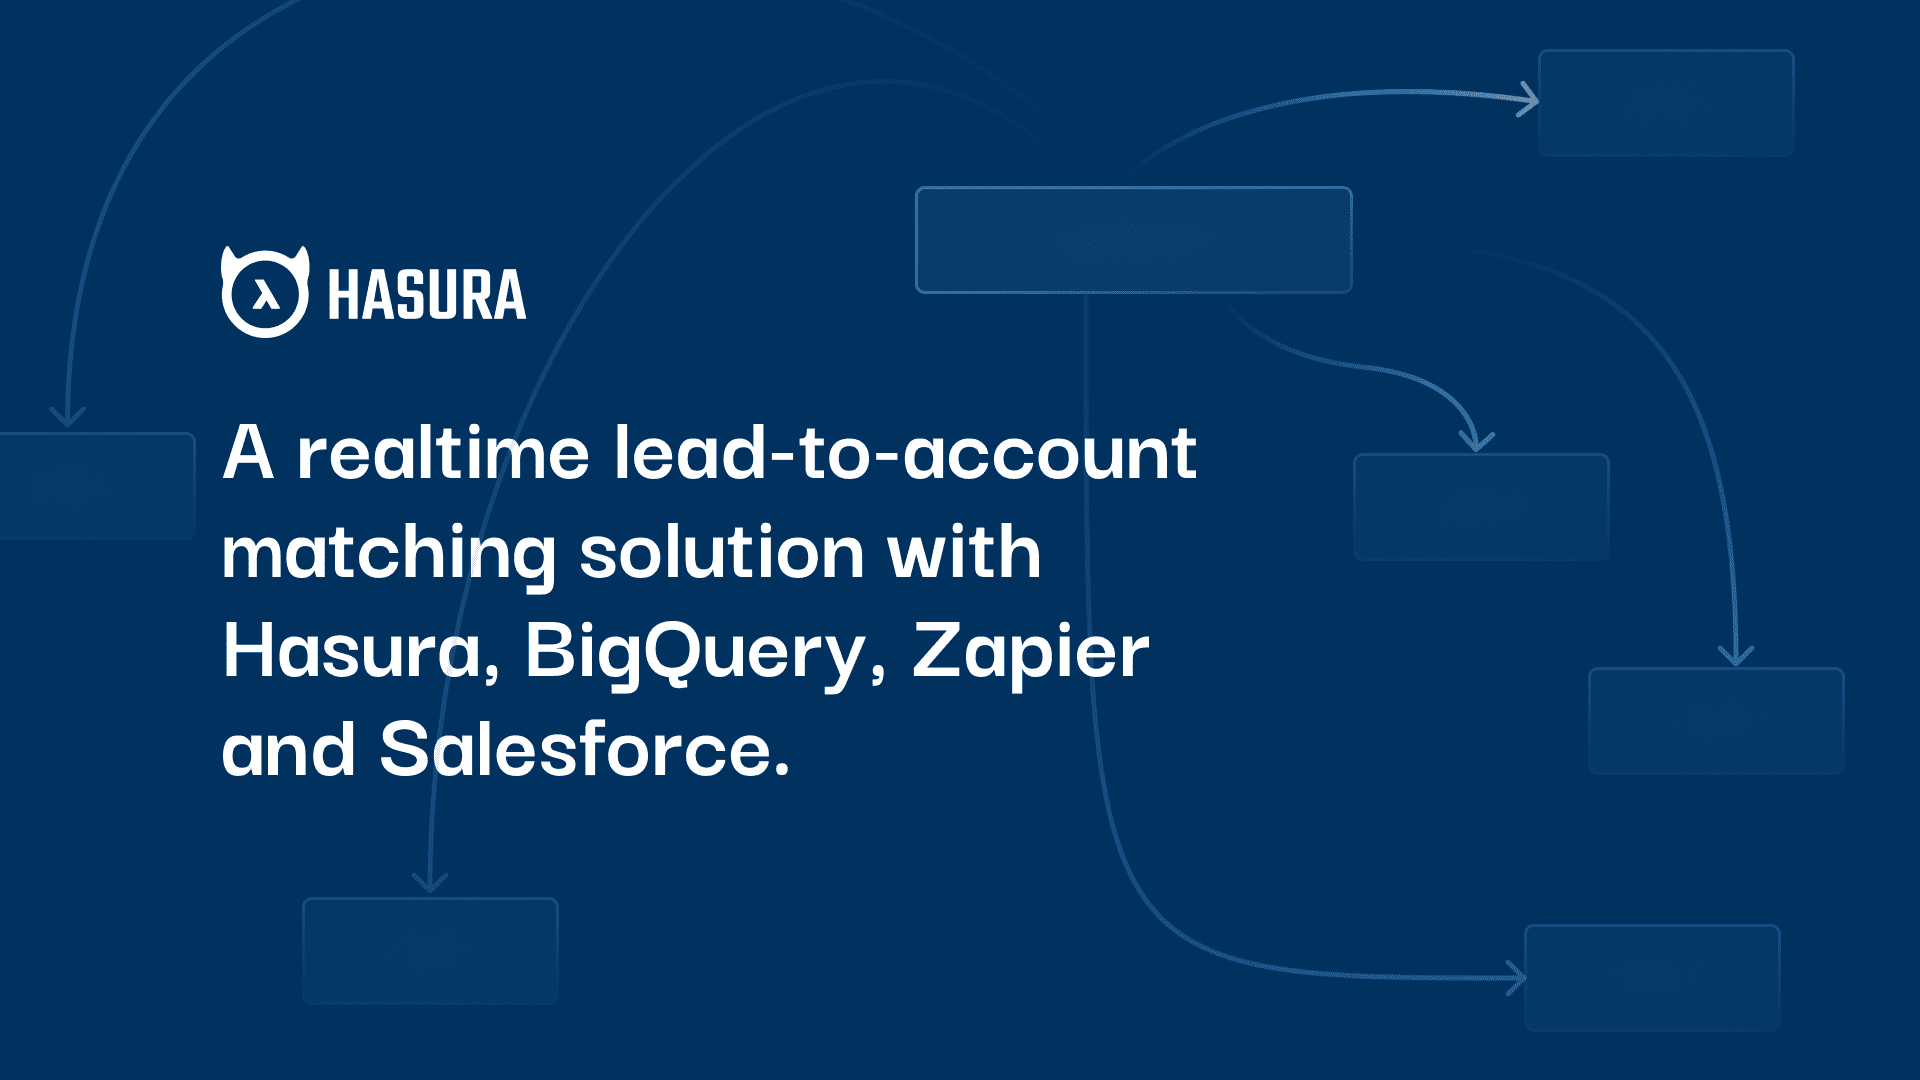 How our marketing ops team built a realtime lead-to-account matching solution with Hasura, BigQuery, Zapier and Salesforce.